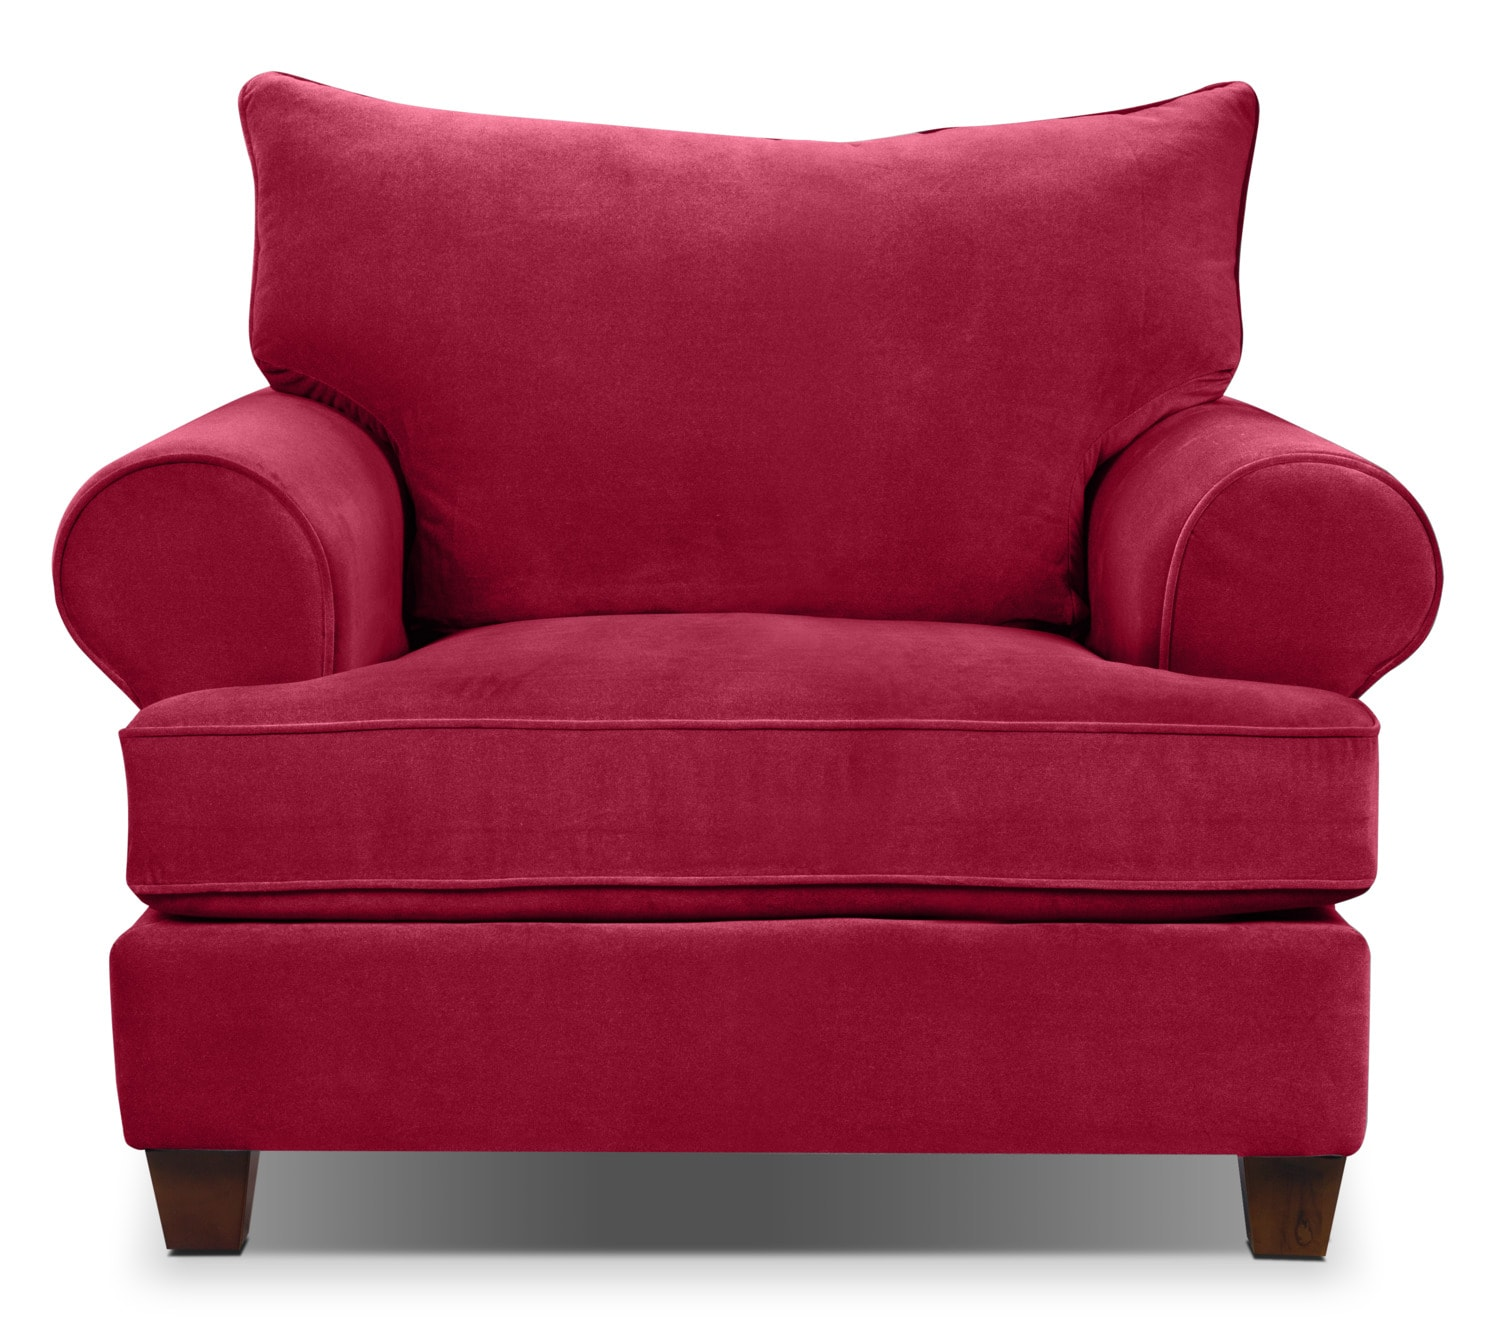 Living Room Furniture - Paige Microsuede Chair - Red